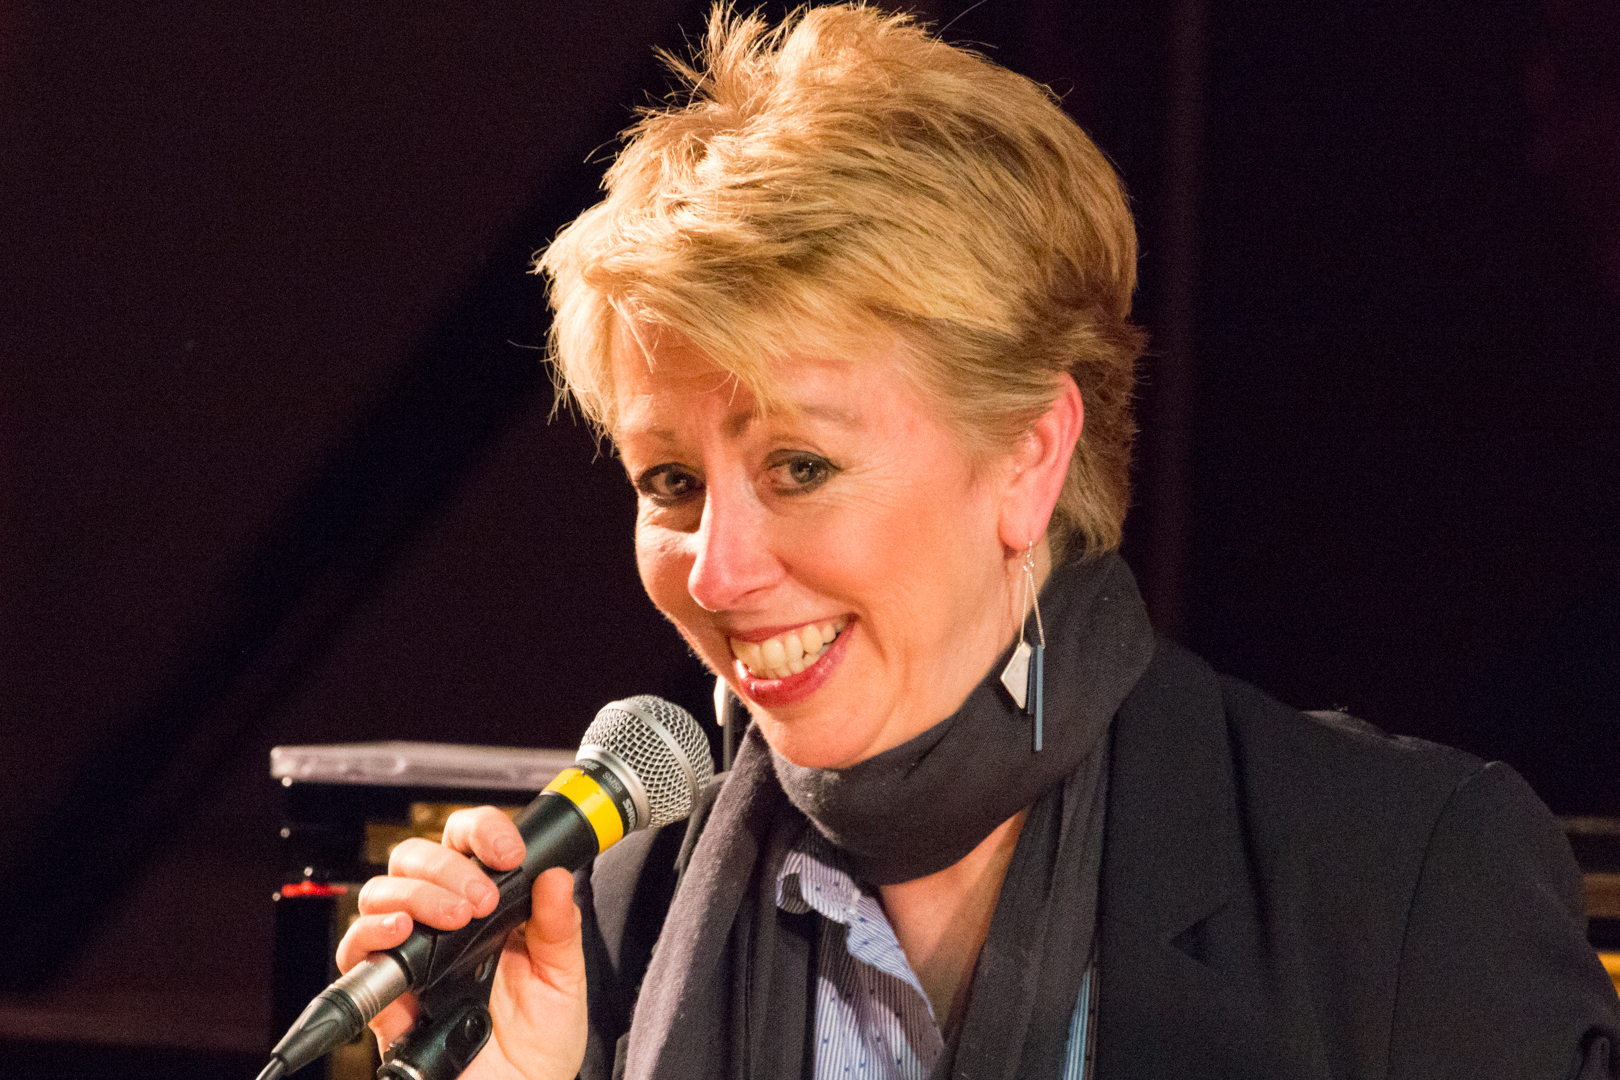 Nikki Iles performing at Fleet Jazz on 19th Feb 2019.